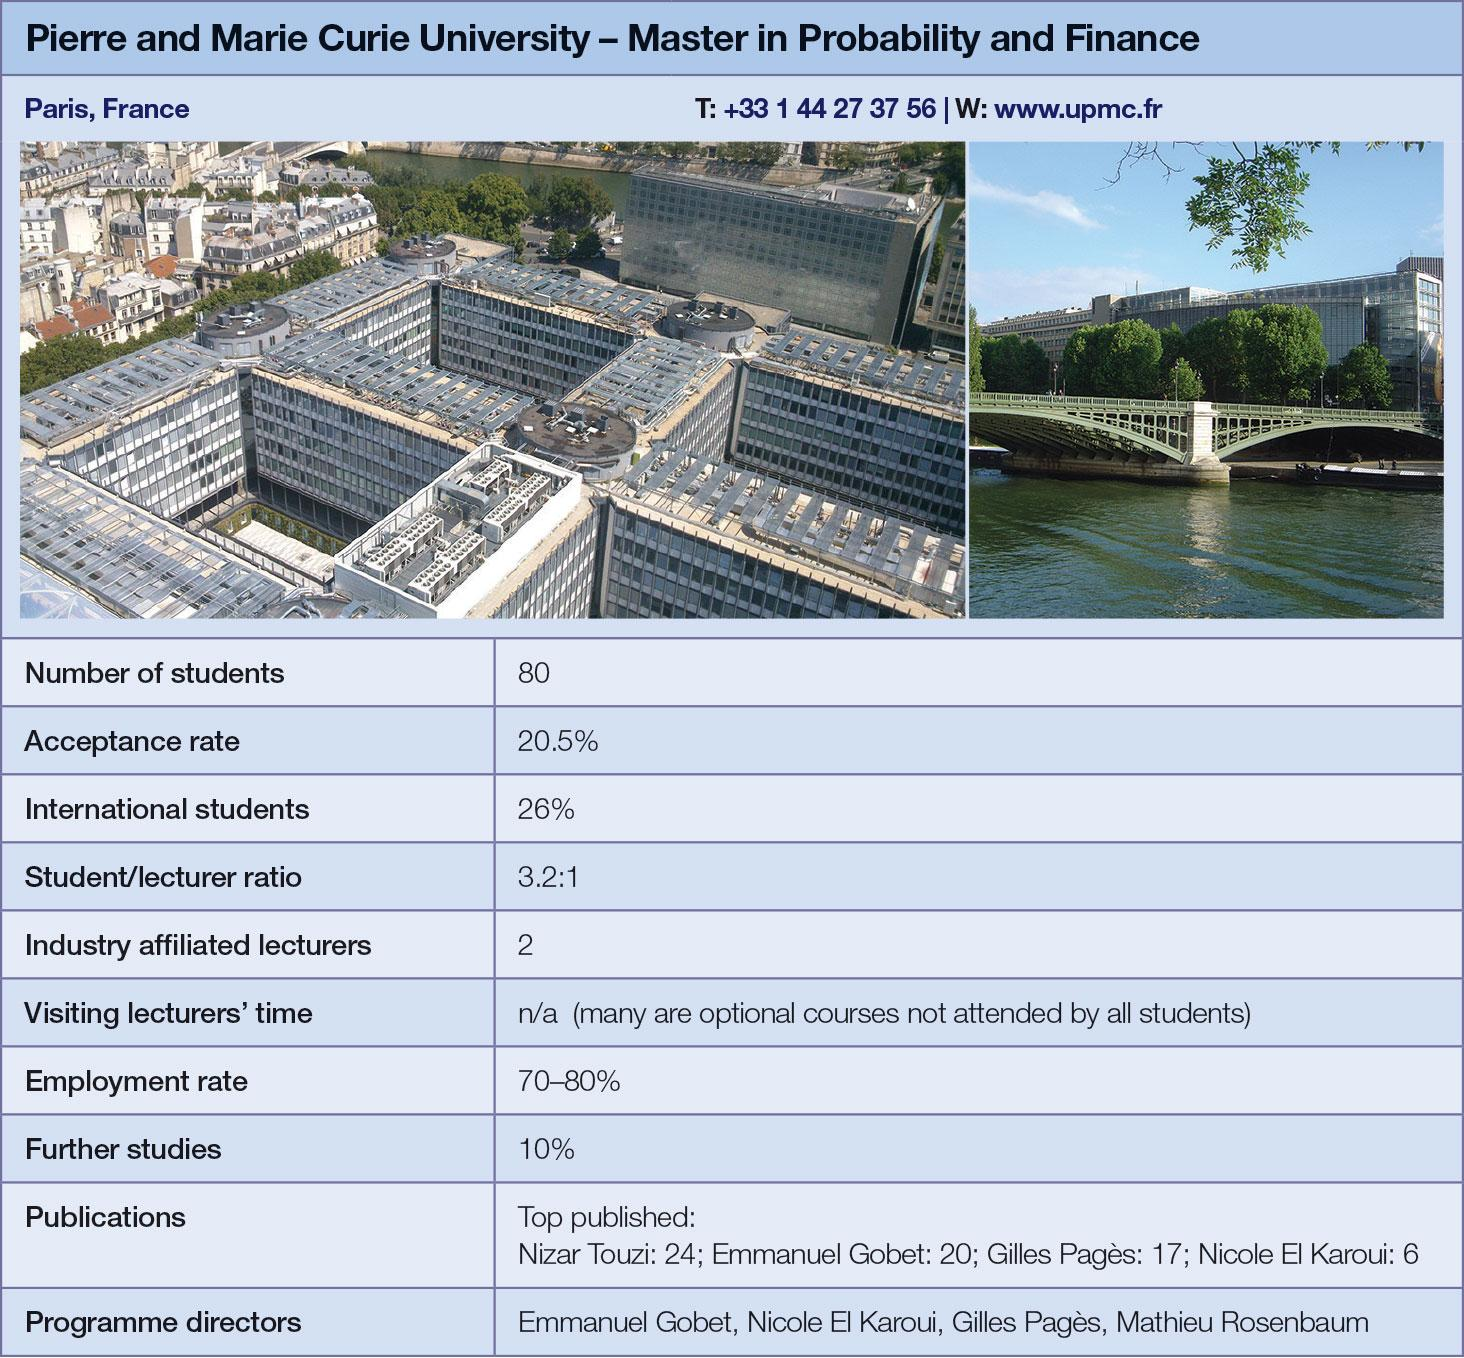 Pierre and Marie Curie University metrics